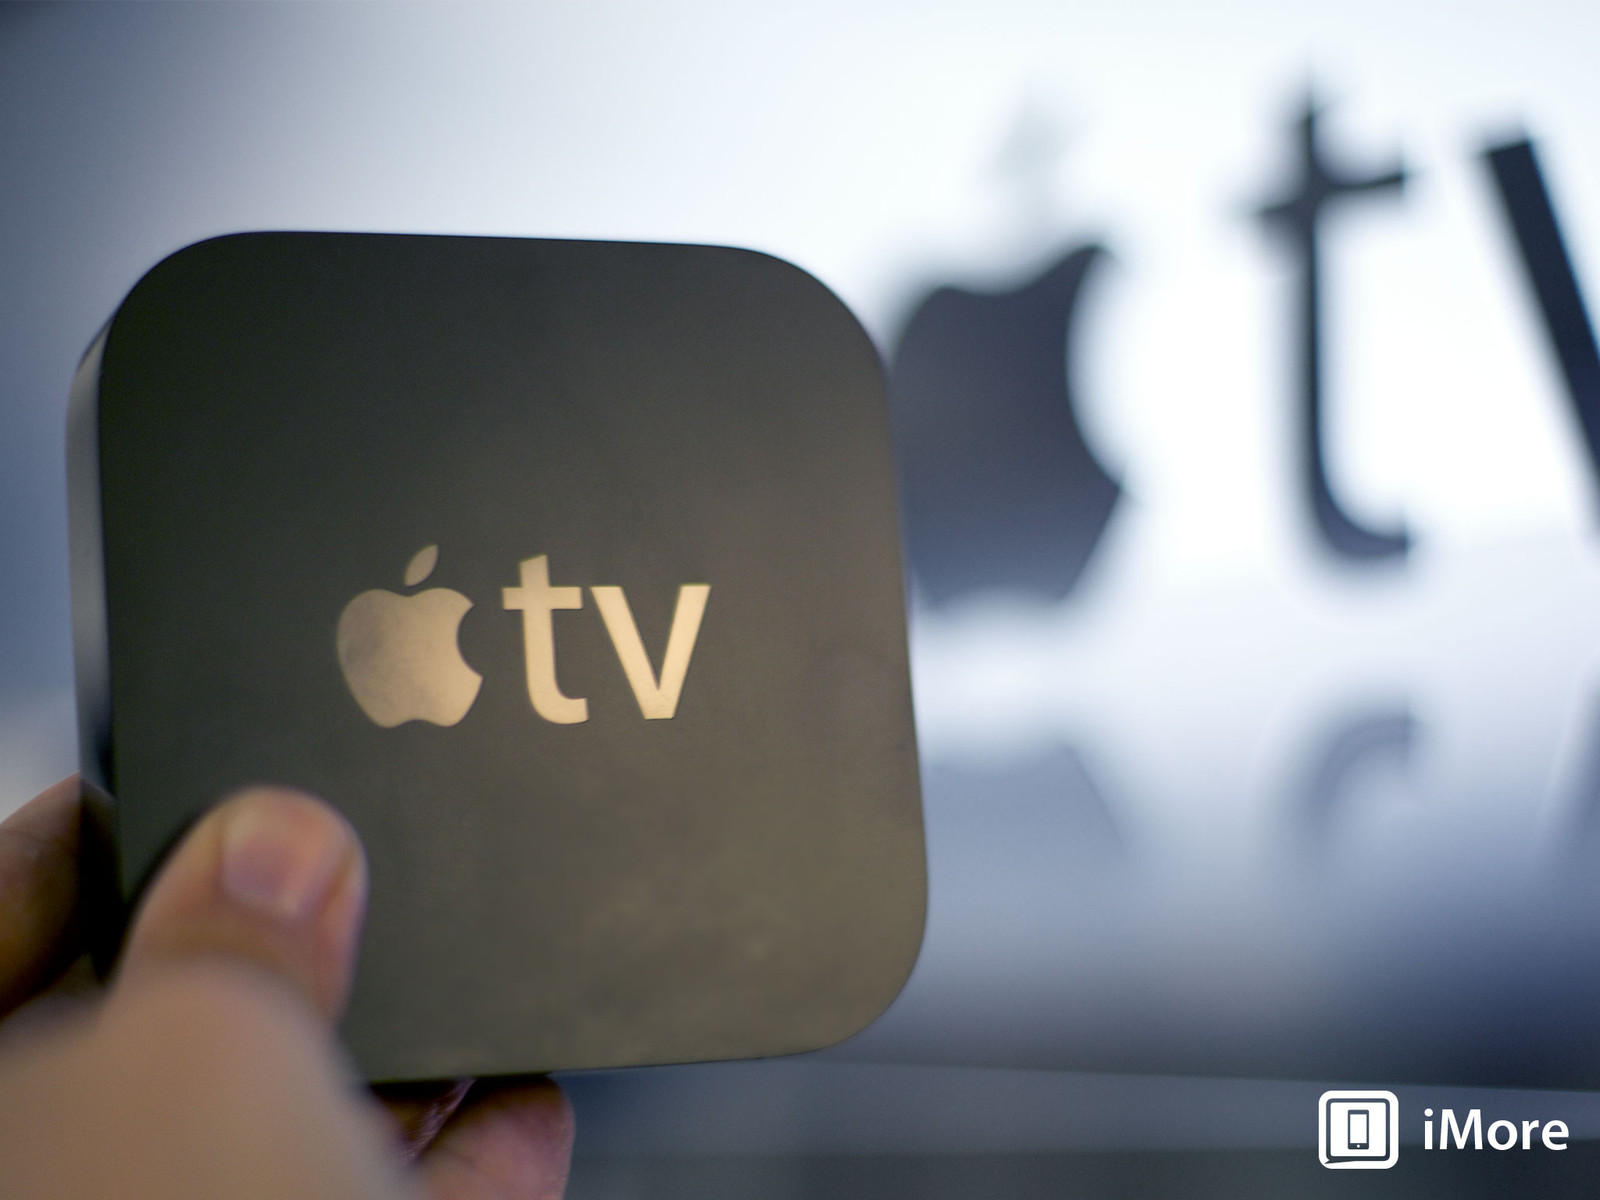 Apple and Comcast reportedly negotiating streaming TV service deal